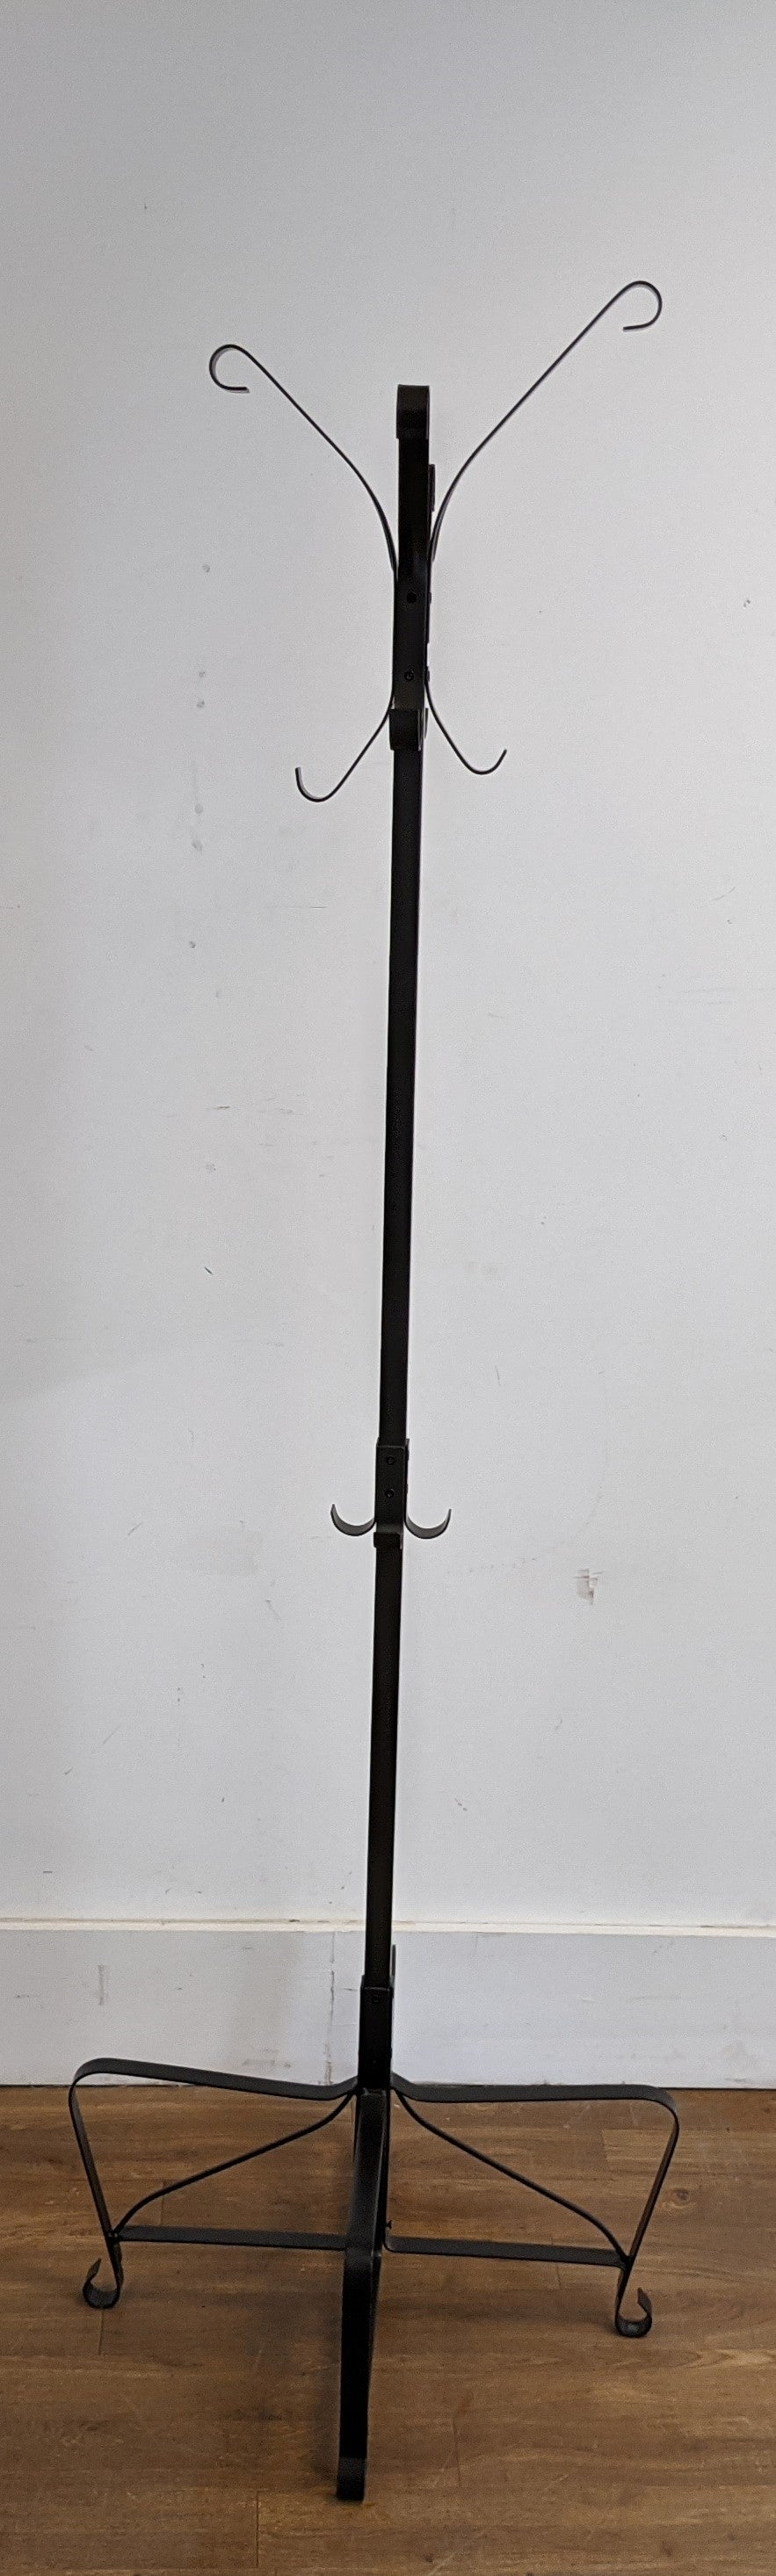 IKEA PORTIS Hat & Coat Stand, Pewter Grey - 185816